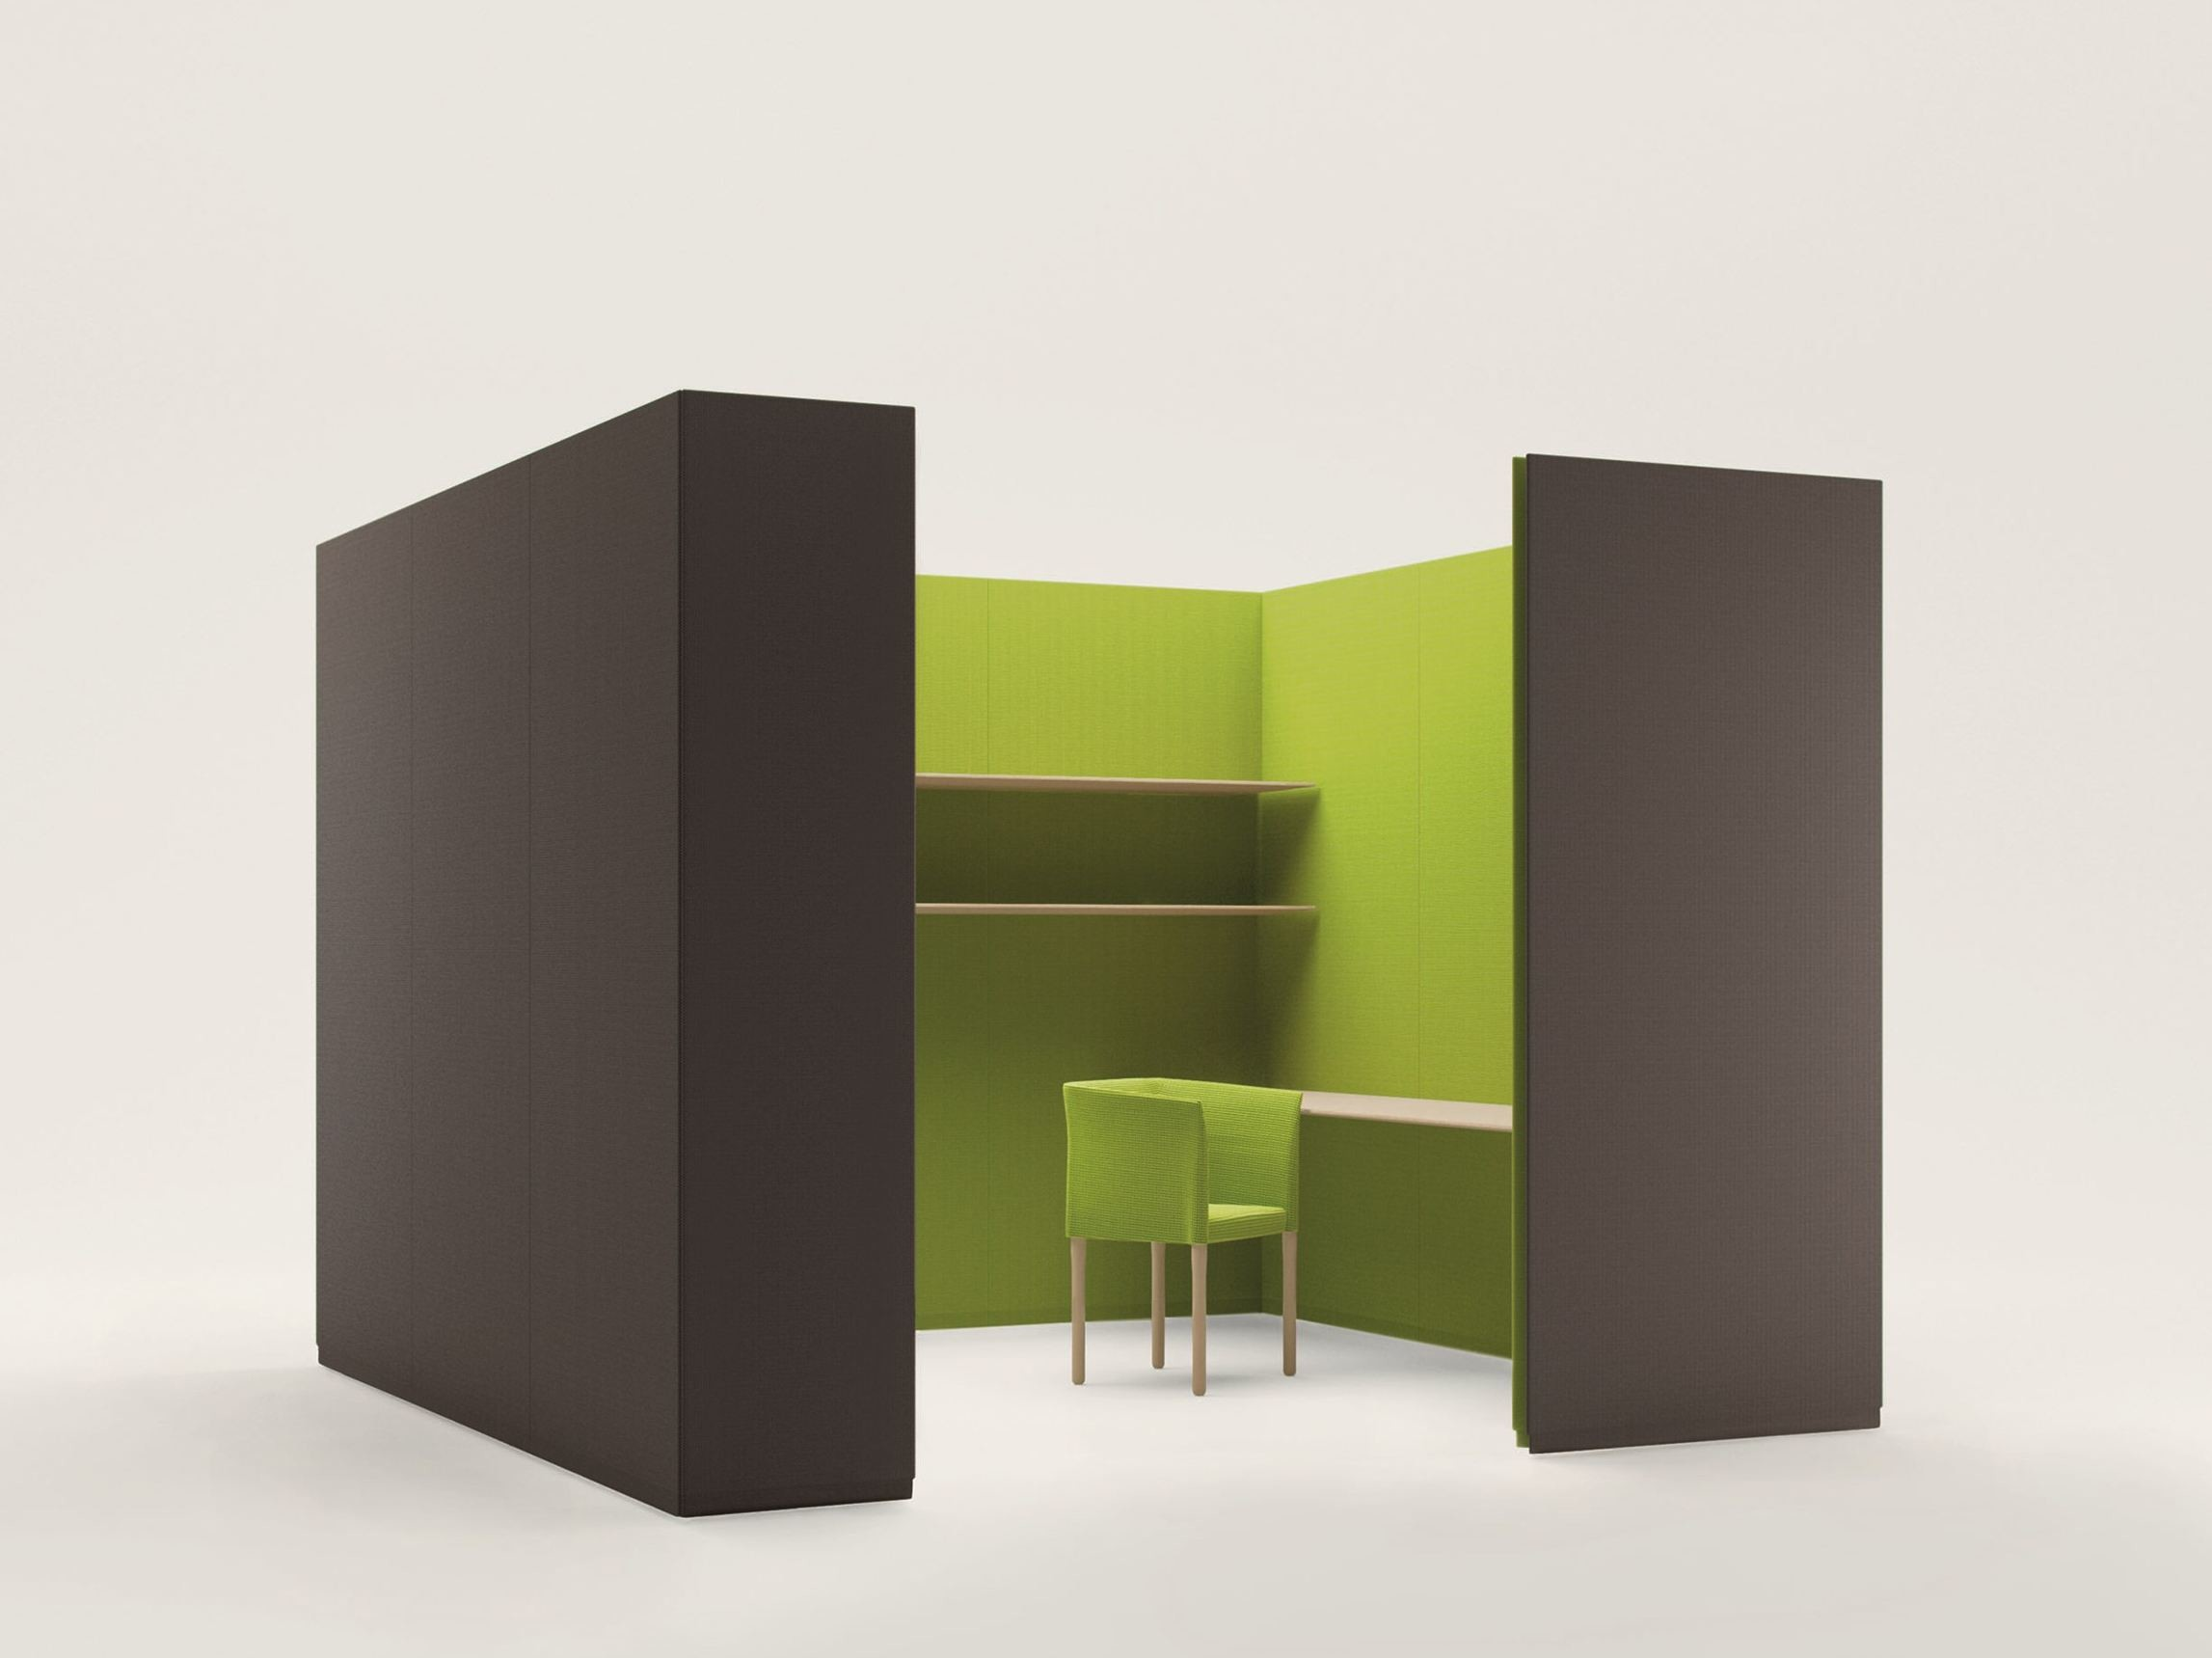 2294x1719 Build Free Standing Workstation Screen By Paola Lenti Design Fabric Room  Divider. good interior design ...